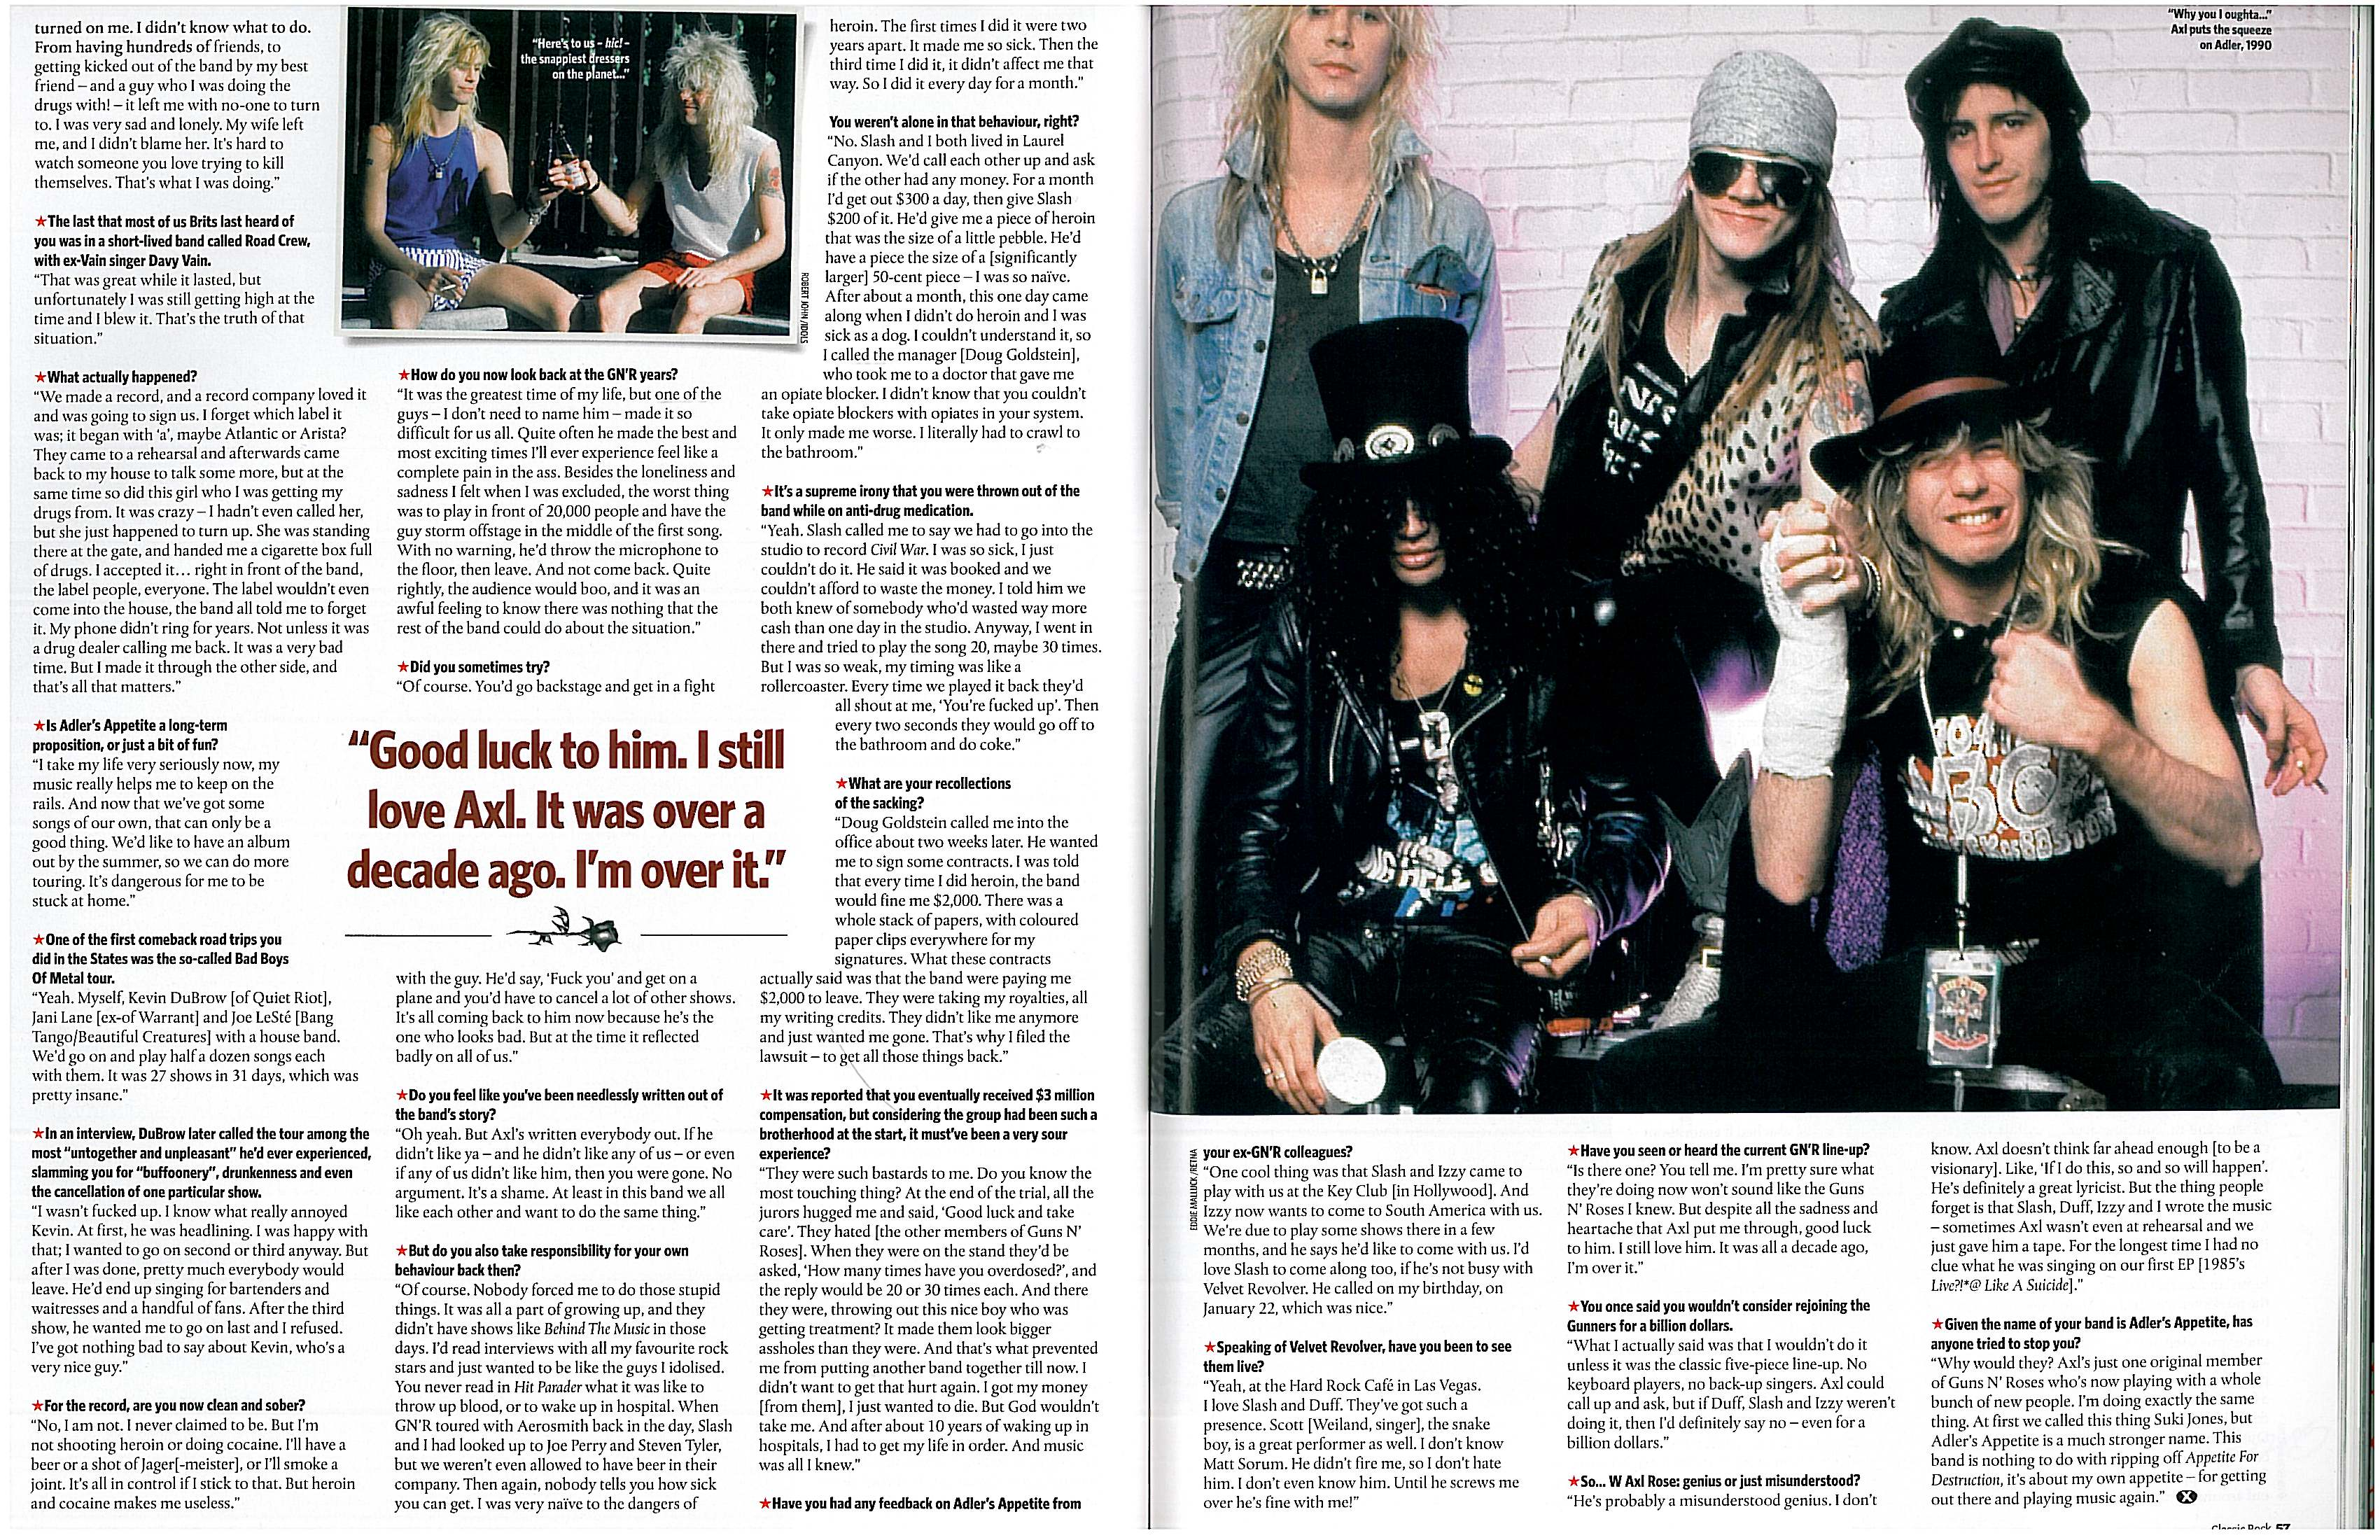 2005.04.XX - Quotes from Duff, Steven and Slash in Classic Rock Magazine 4gfQYlar_o